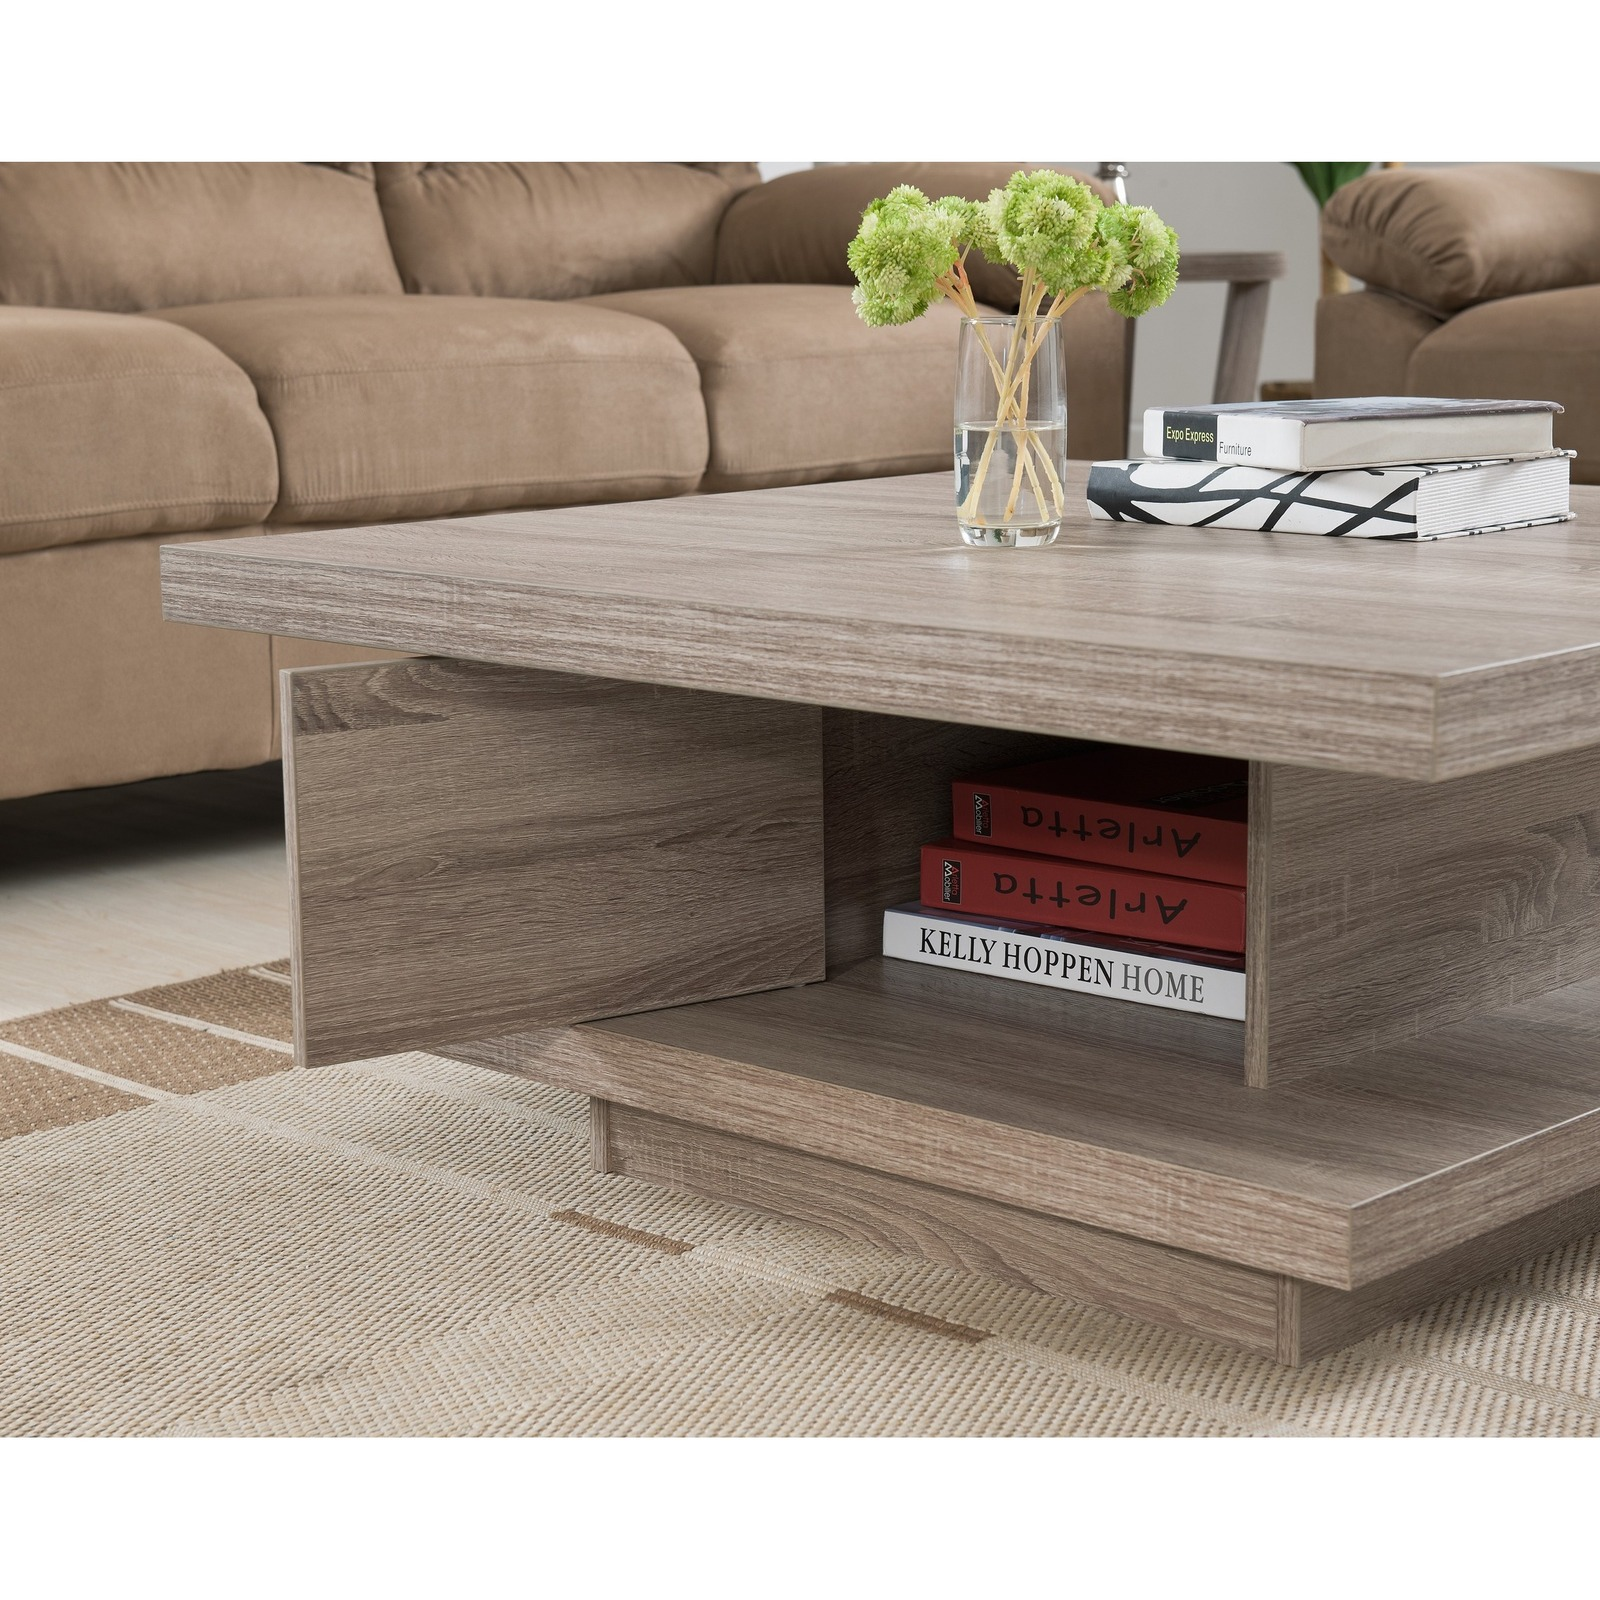 Colorful Modern Coffee Table: Contemporary Modern Wood Coffee Tables Unique Square Style